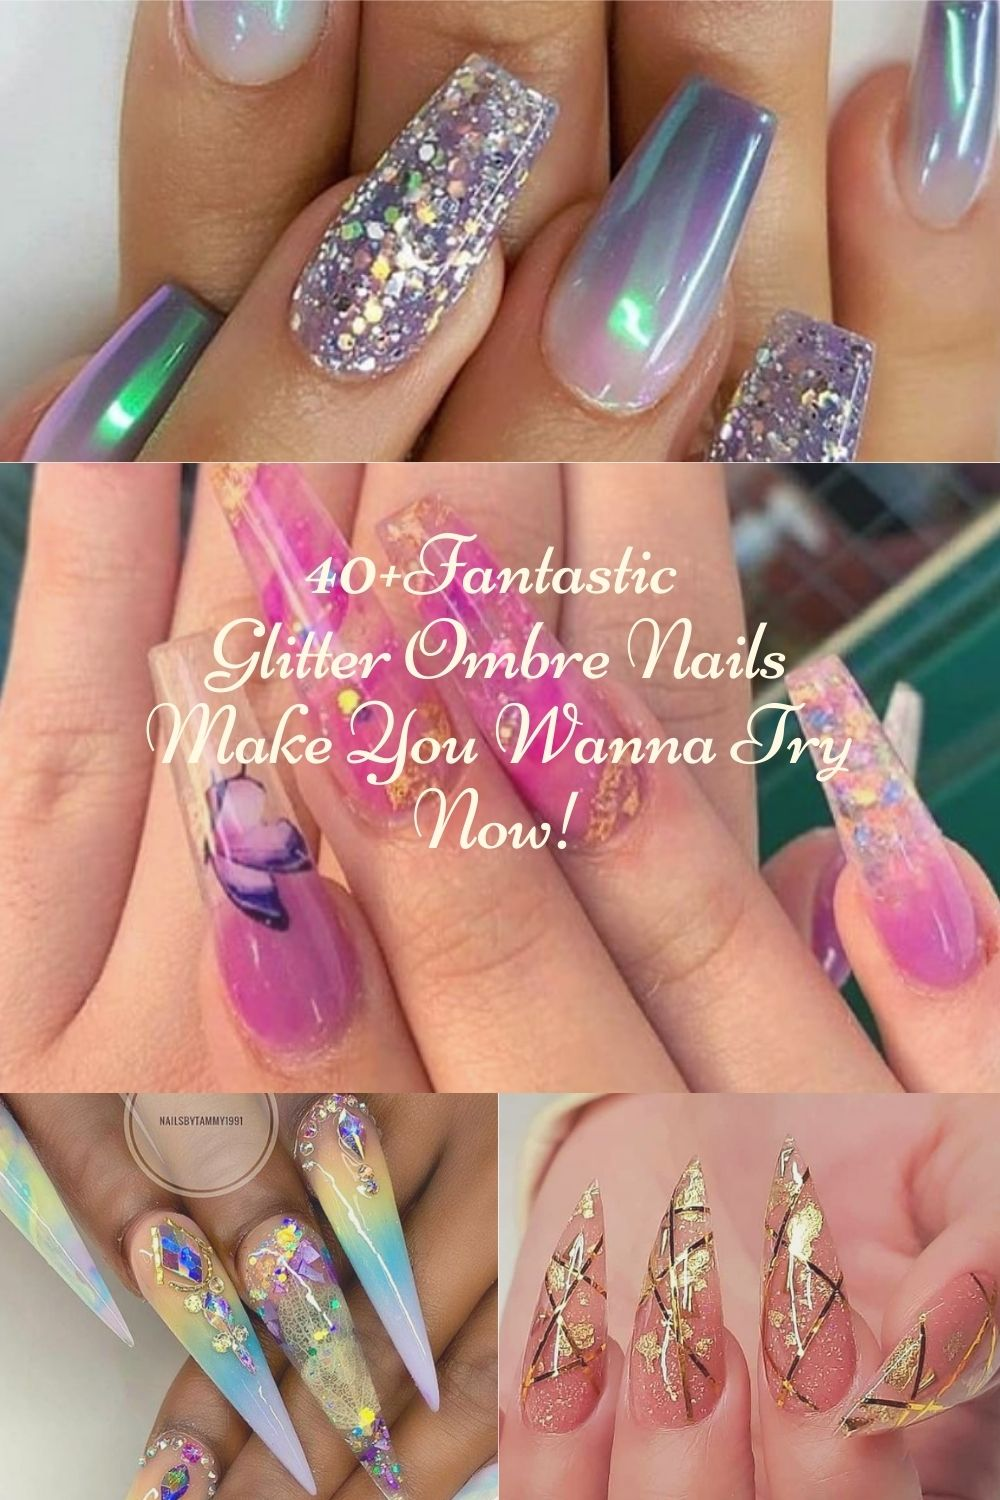 40+Fantastic Glitter Ombre Nails Make You Wanna Try Now